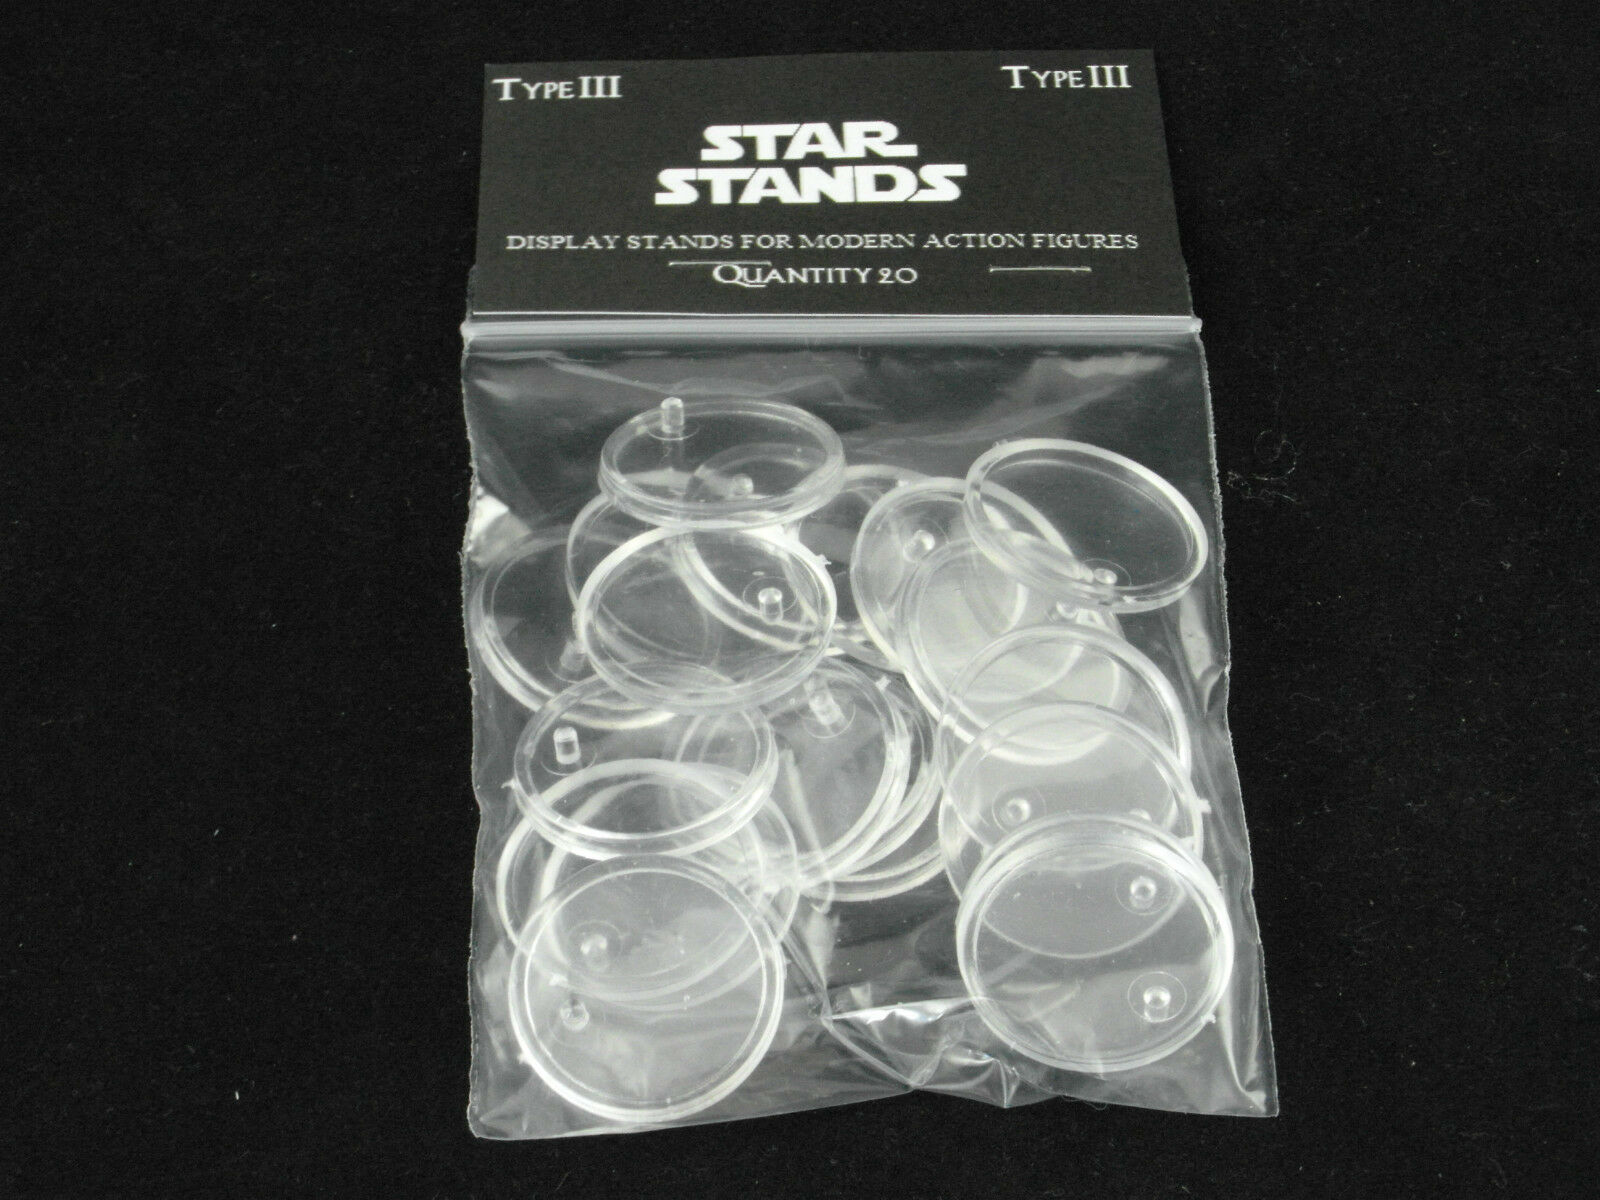 100 x Small Small Small Disc Star Wars MODERN action figure DISPLAY STANDS - T3c 6e8585